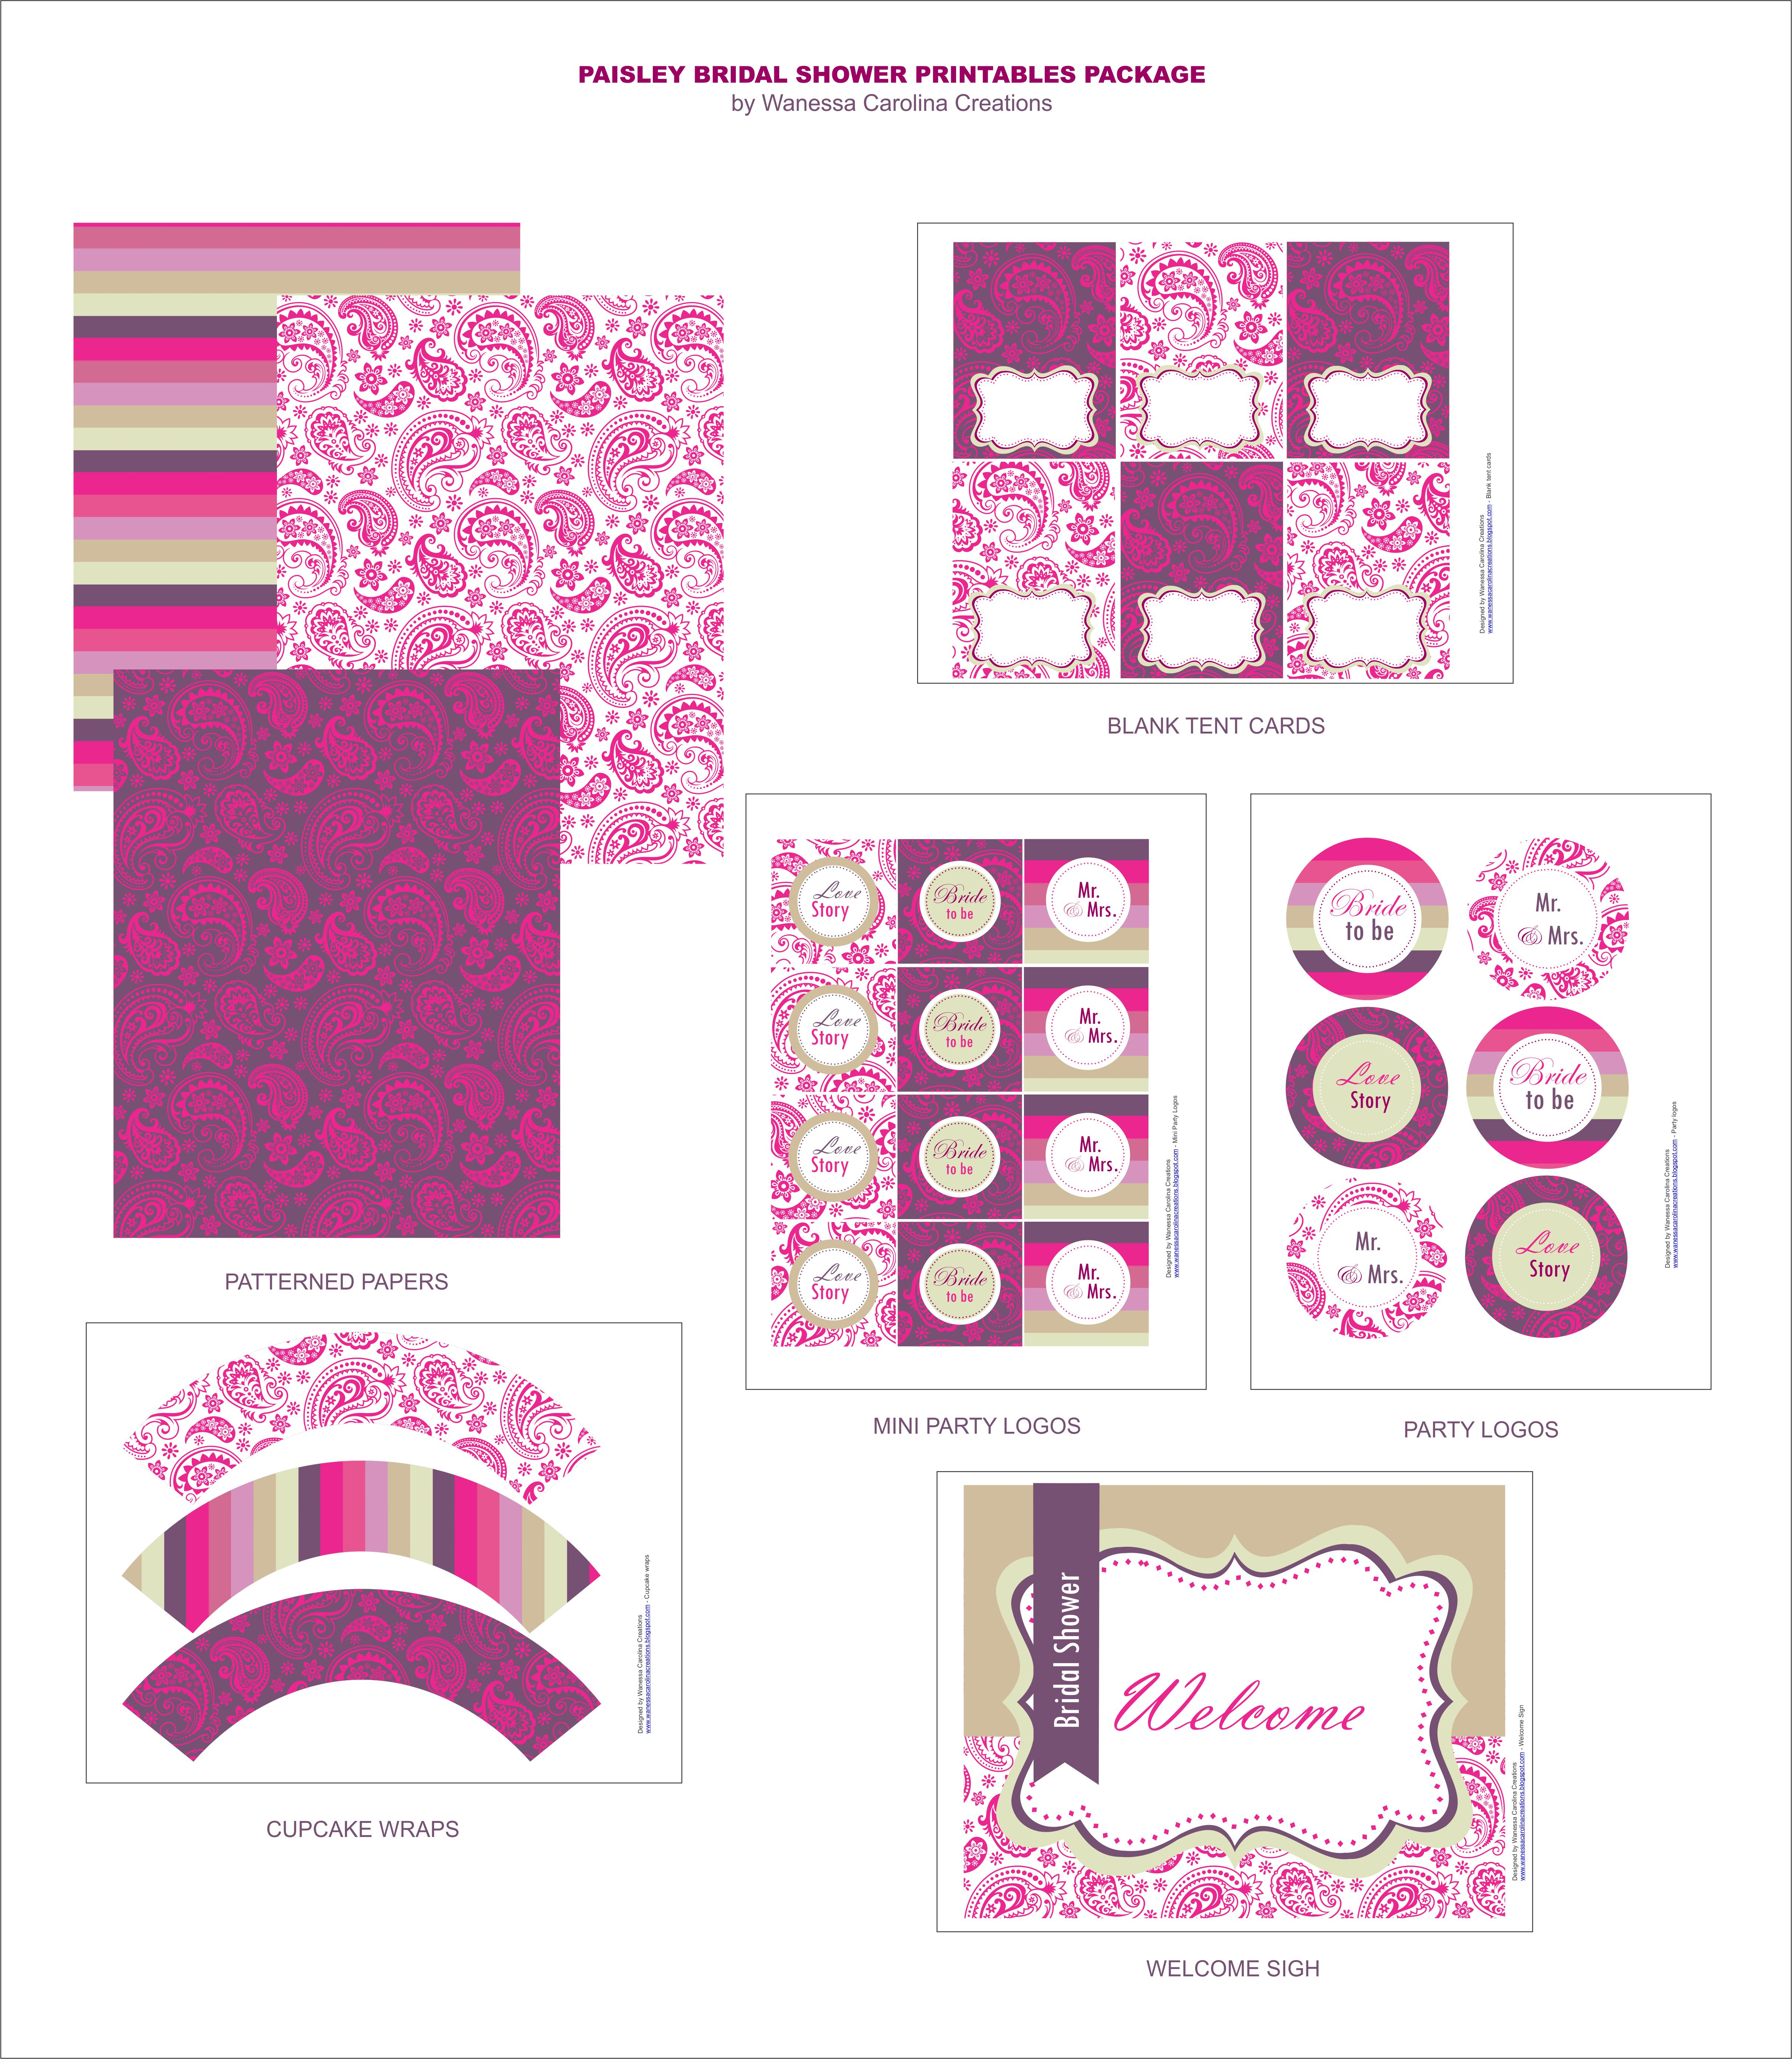 Free Bridal Shower Printables From Wanessa Carolina Creations - Free Bridal Shower Printables